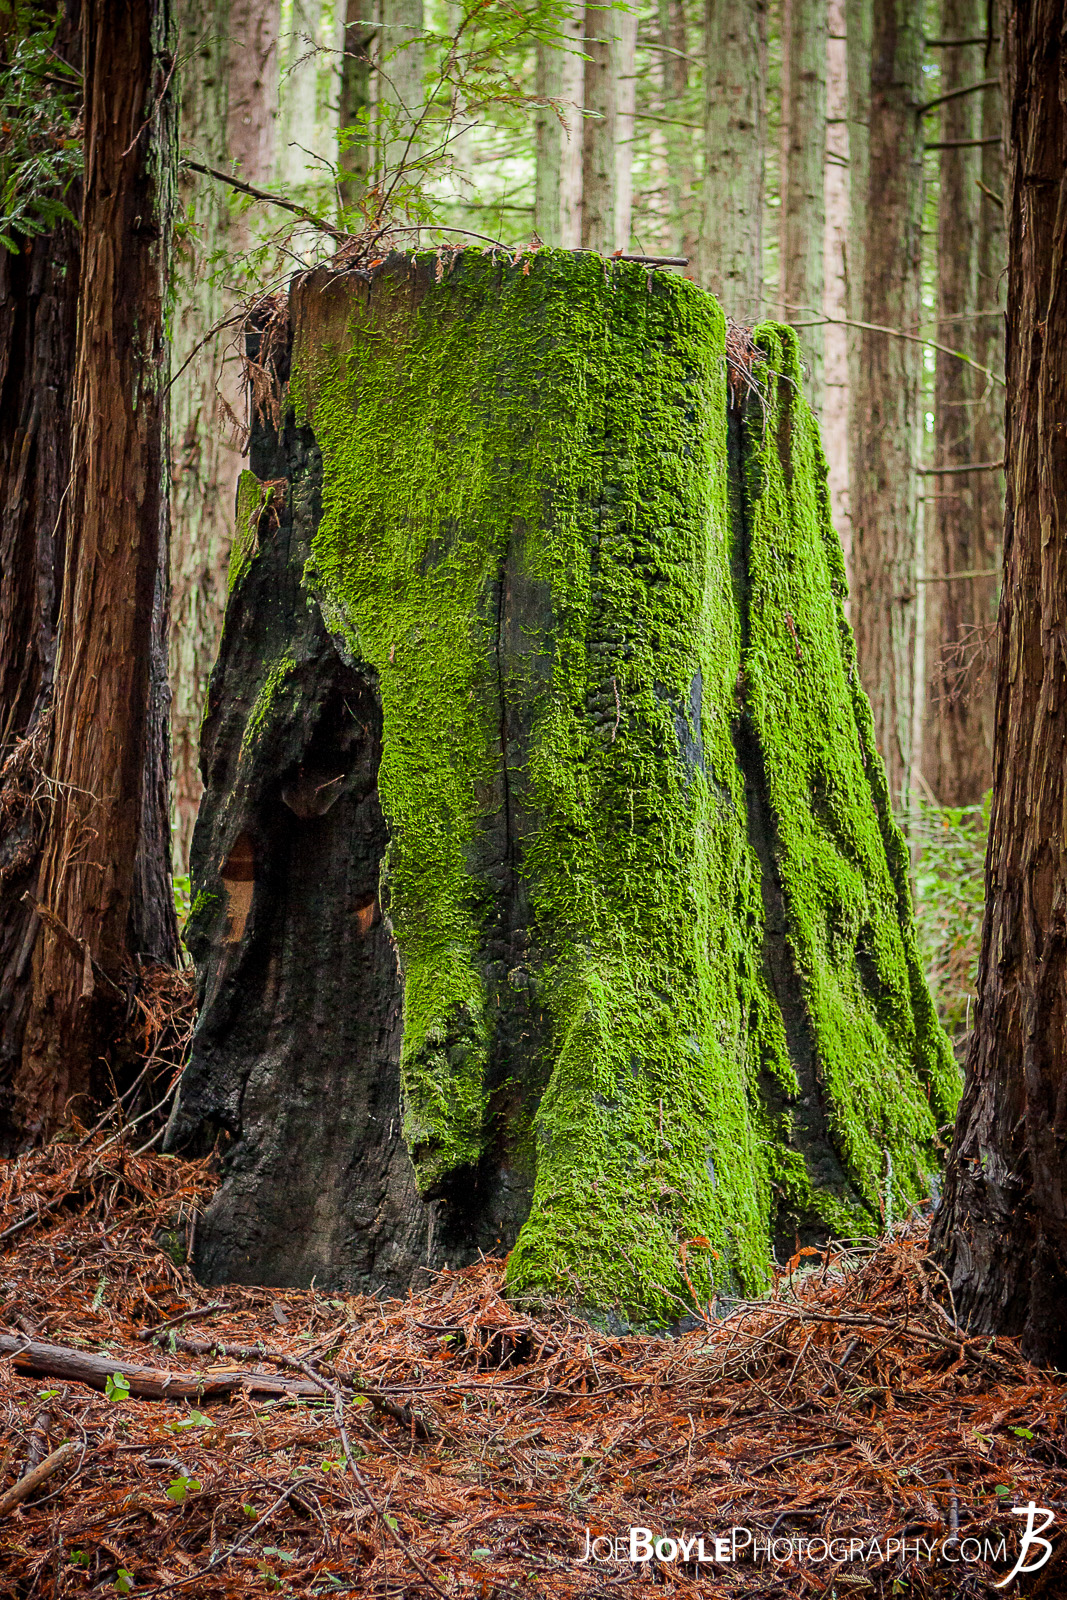 When I was traveling to California I made a stop at University of California, Santa Cruz. The campus amazed me as it was tucked into a beautiful forest on the side of small mountain. It was very cool! Here is an image along one of the paths you would travel on to class. A neat looking, old tree stump with vibrant moss growing on it!